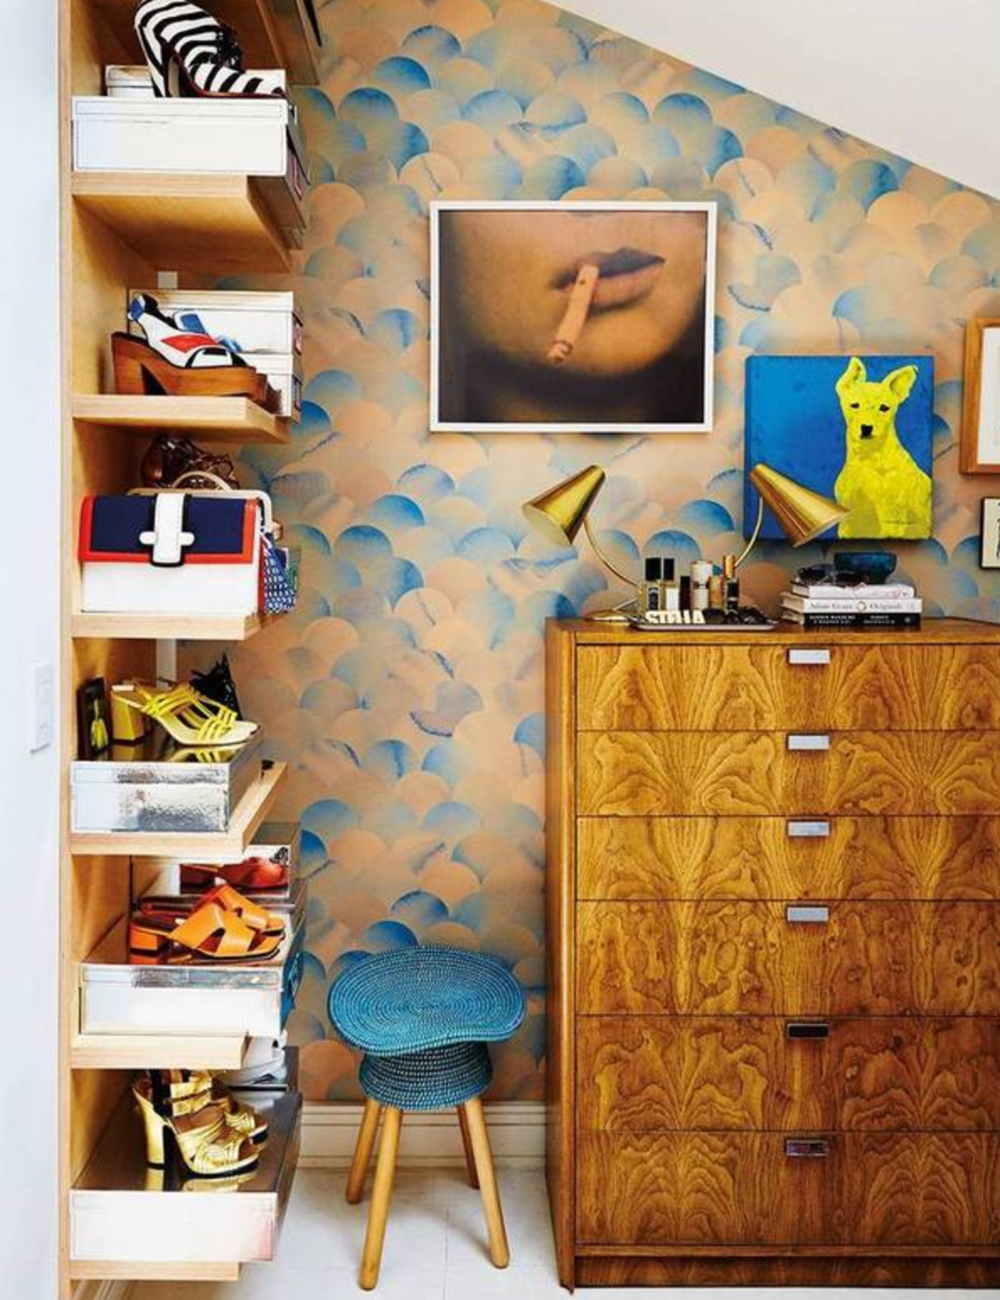 Interior design by Baxter Projects. Photography by Nicole Franzen for Domino Magazine.